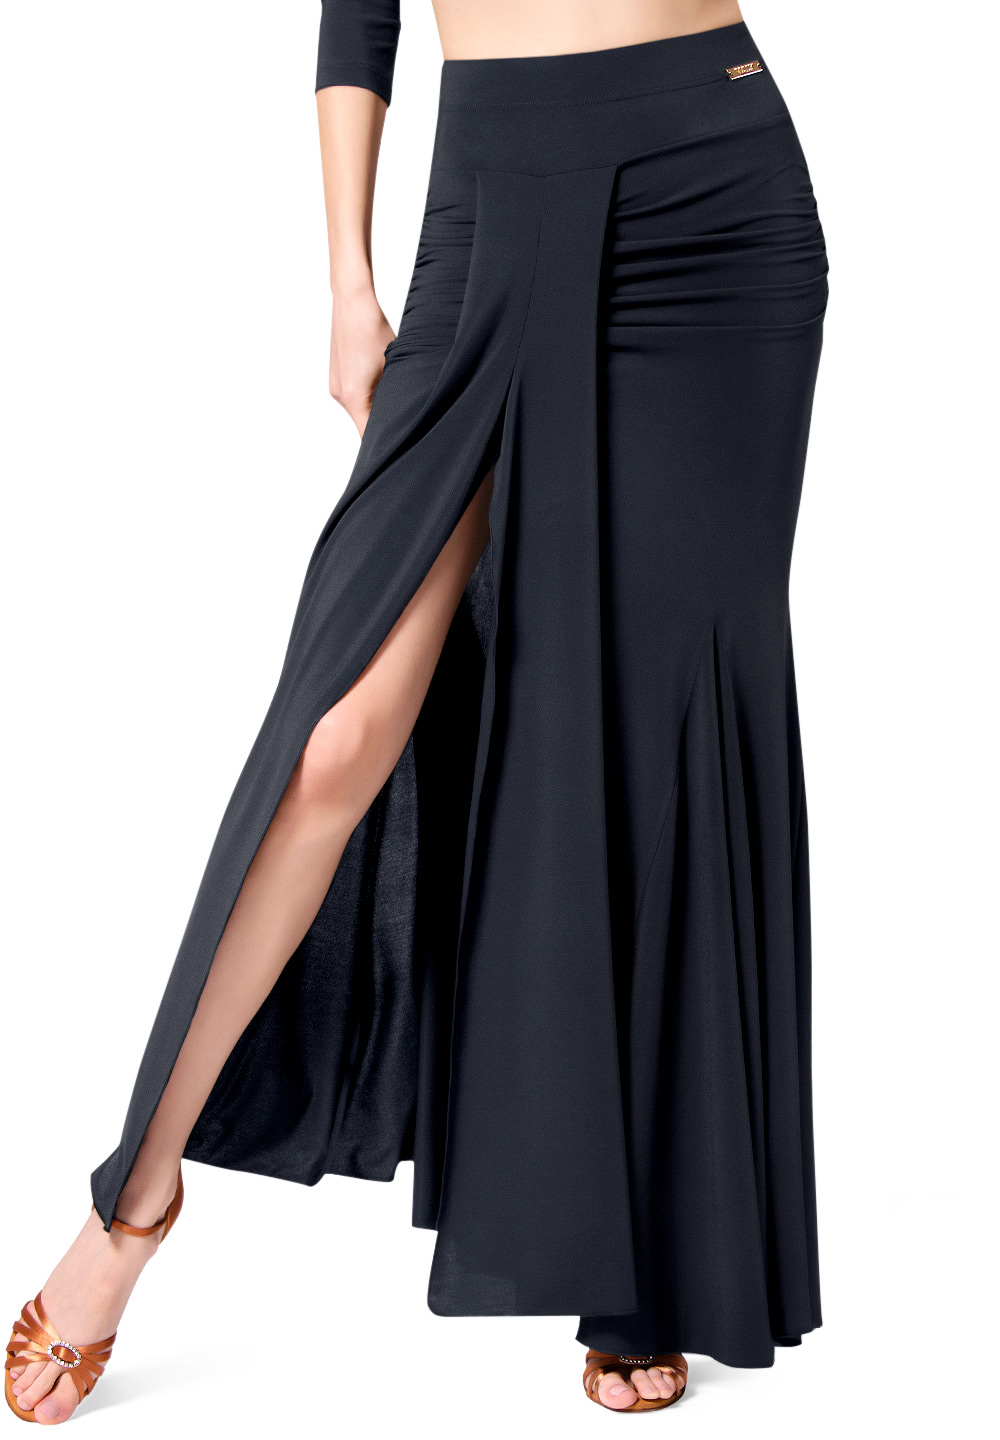 Maly Womens Skirt Long With Slit MF181501